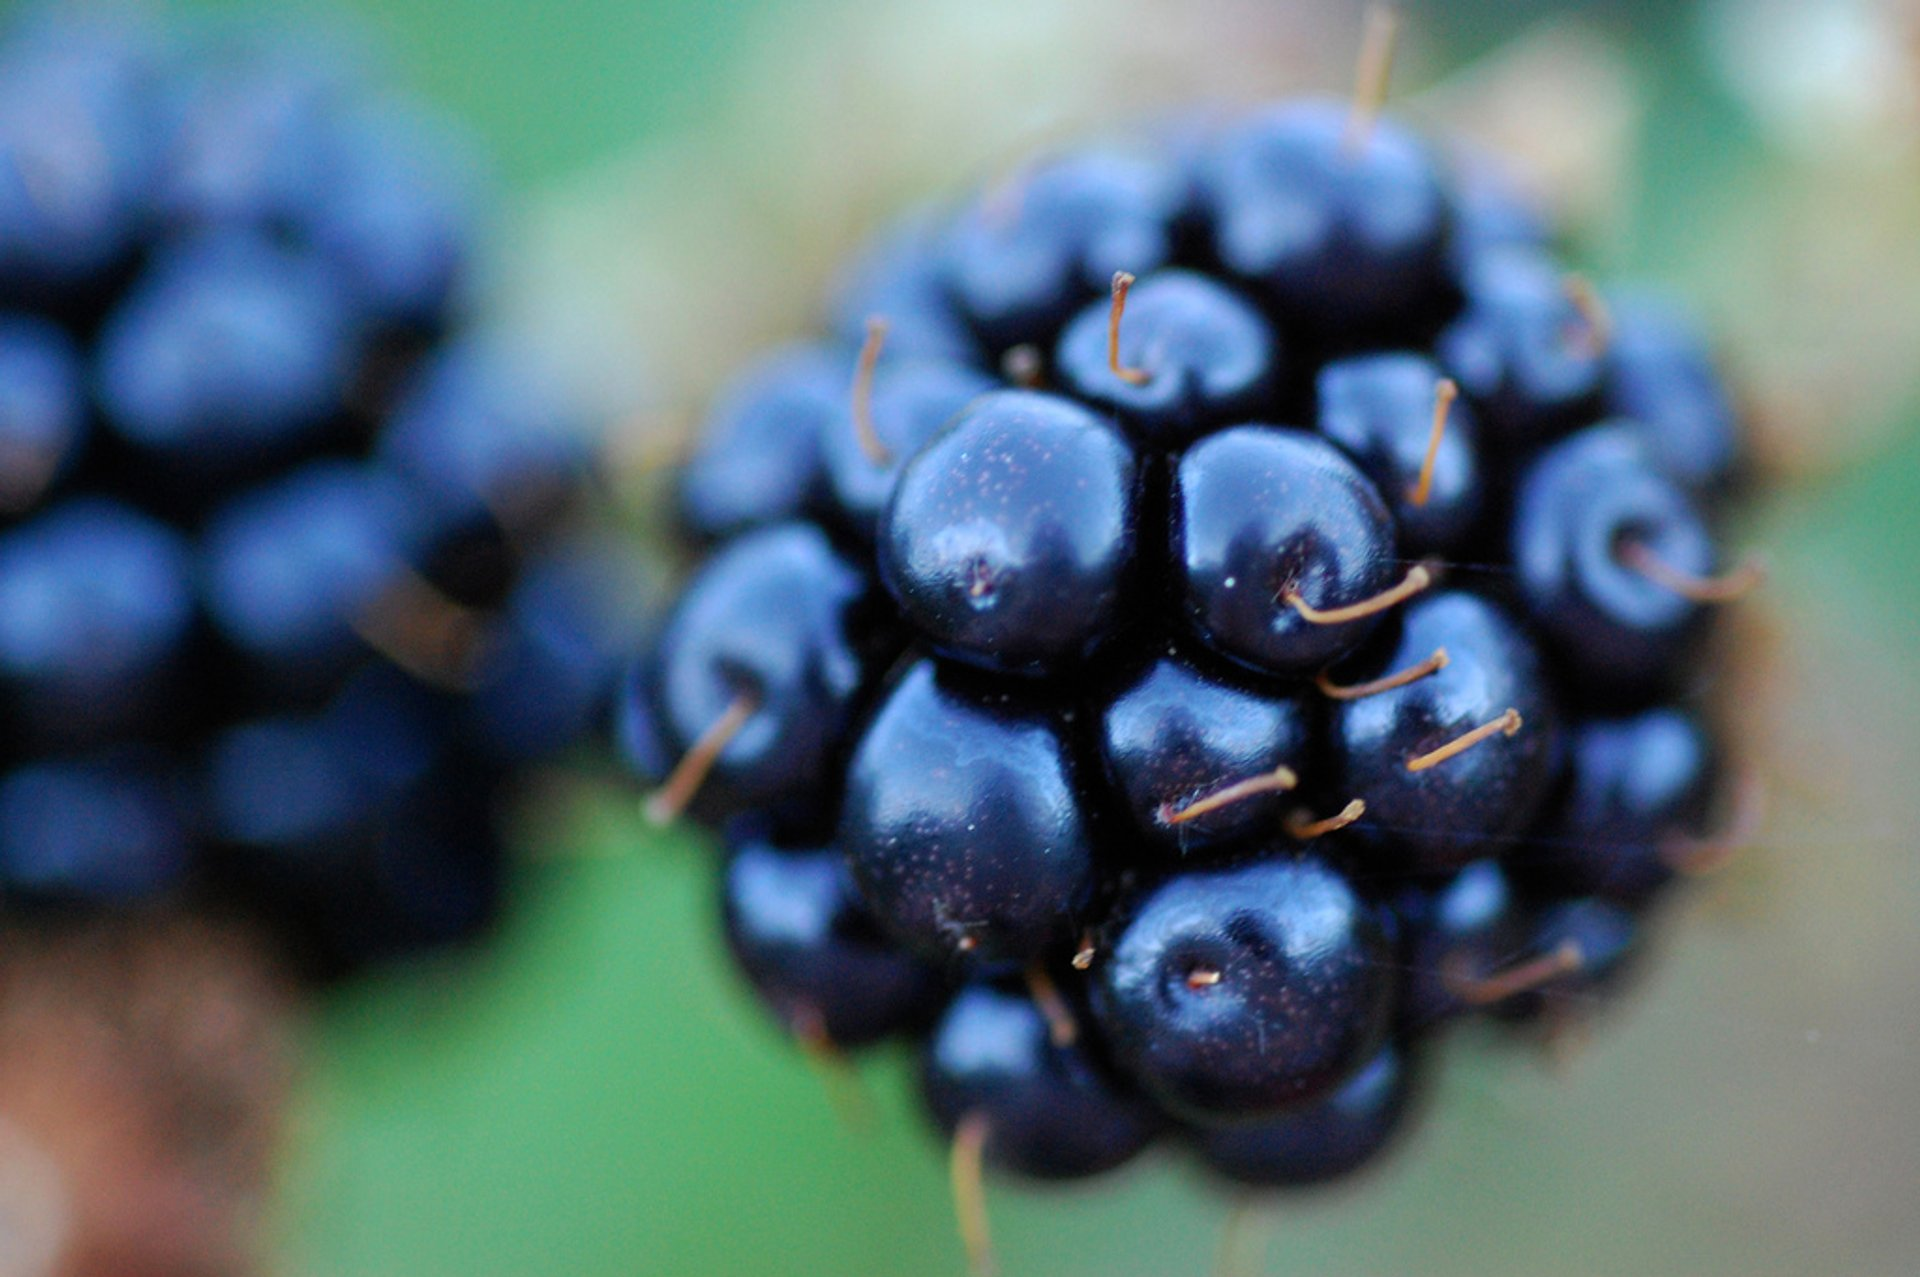 Blackberries in Norway 2020 - Best Time